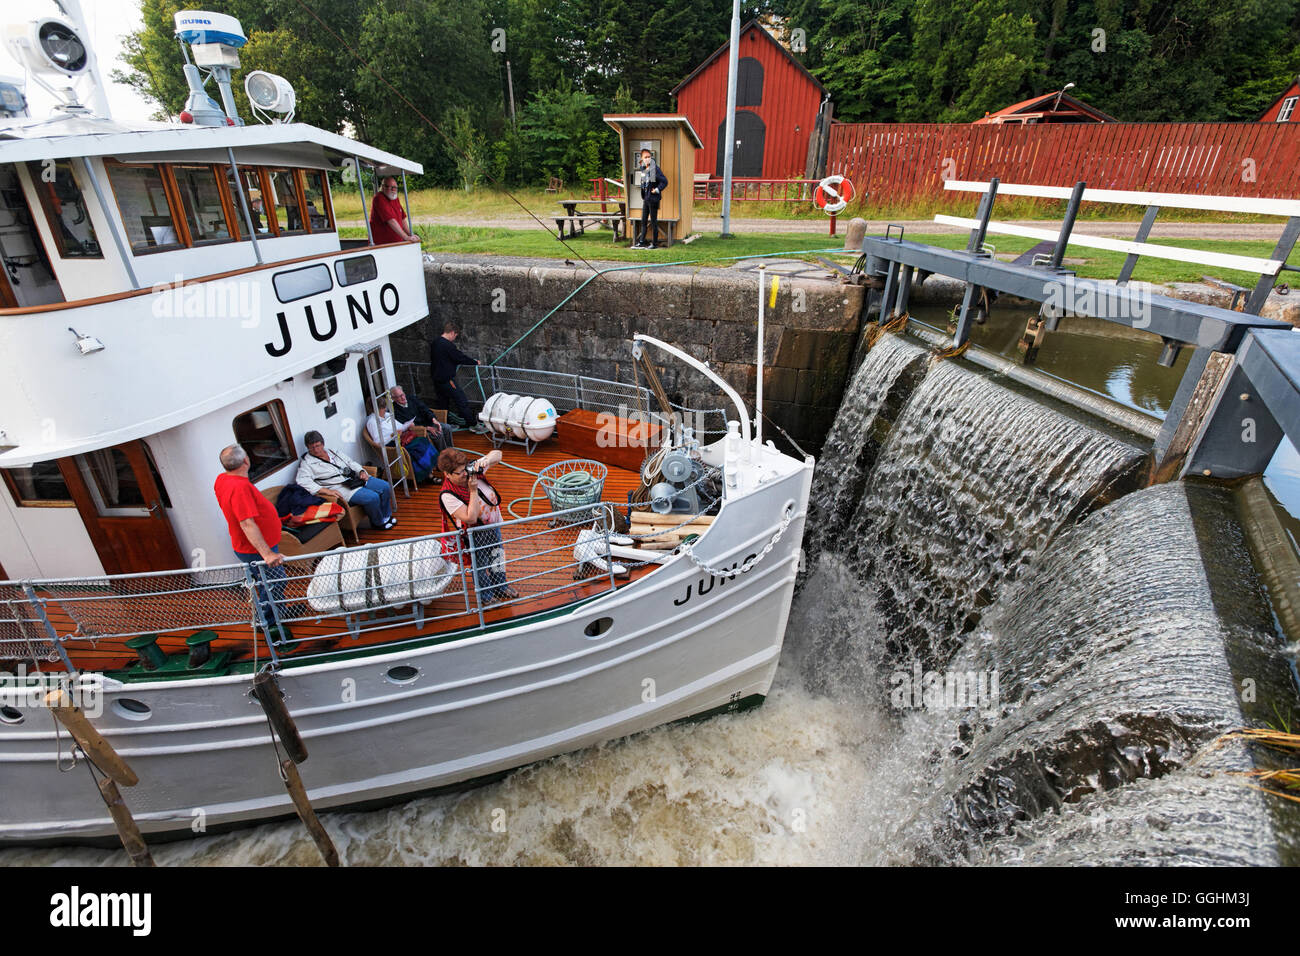 Historic canal boat Juno in a lock, Gota canal, Norrkoeping, Sweden - Stock Image